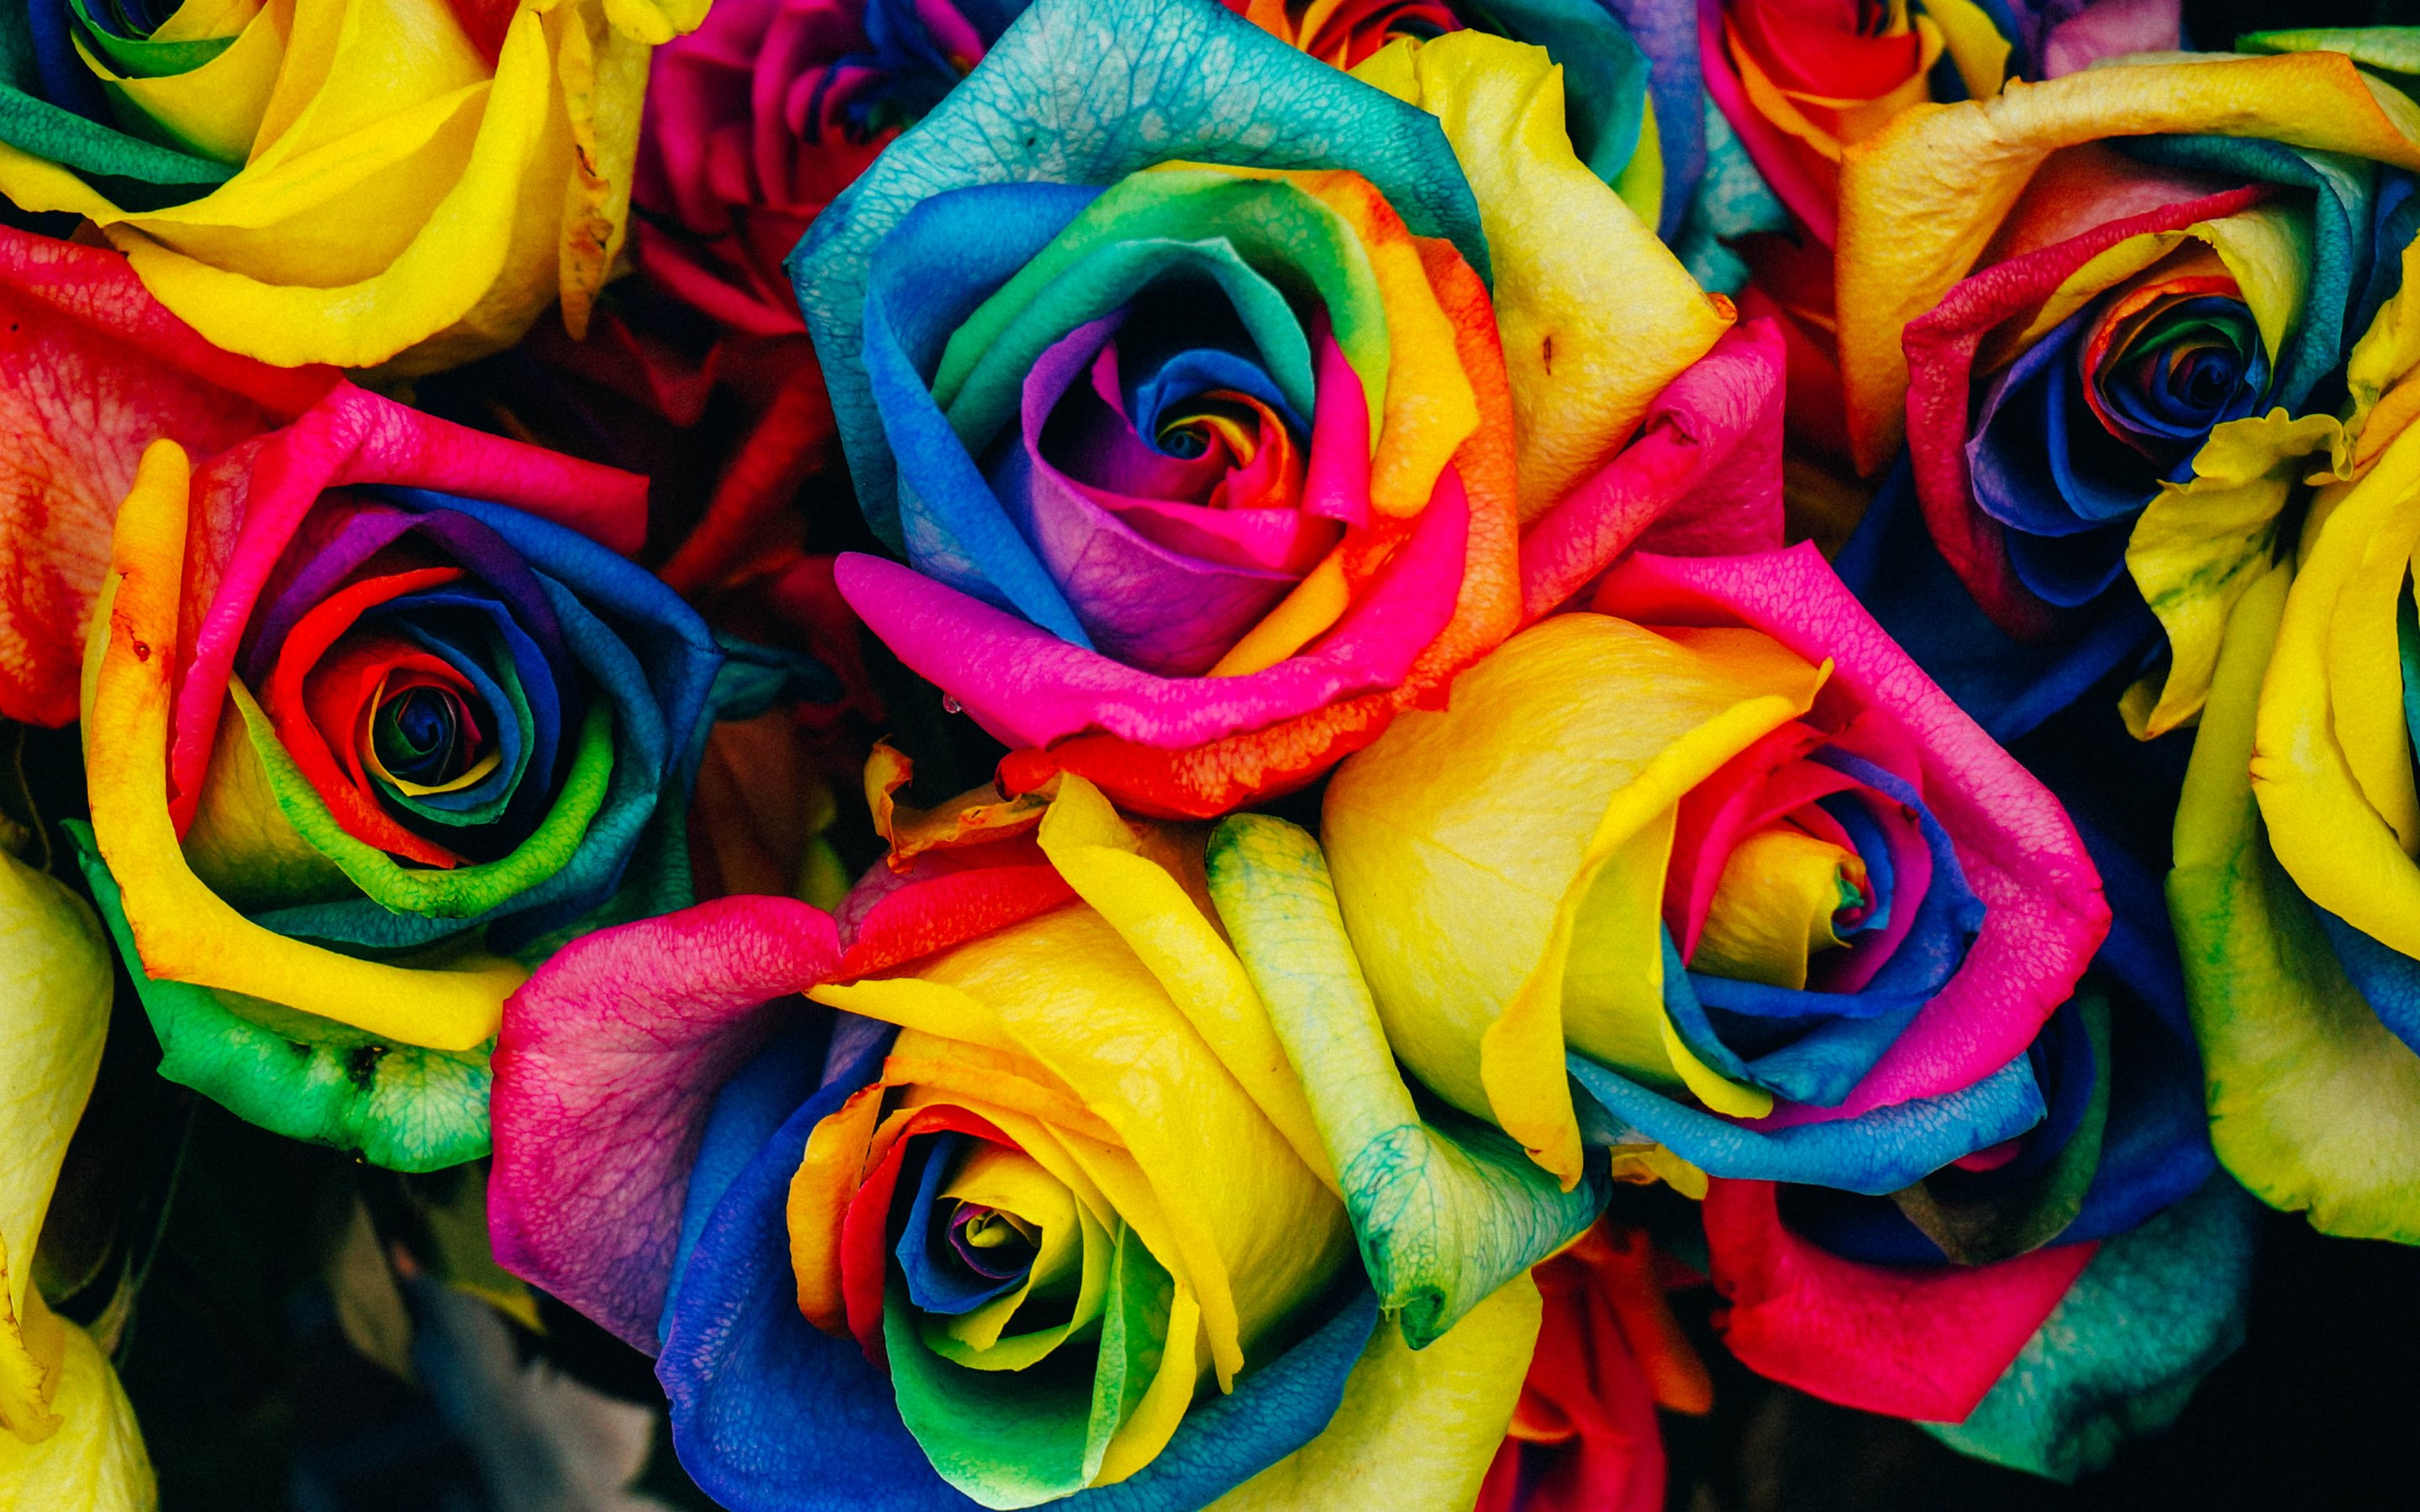 Download free colorful rose wallpapers for your mobile phone by